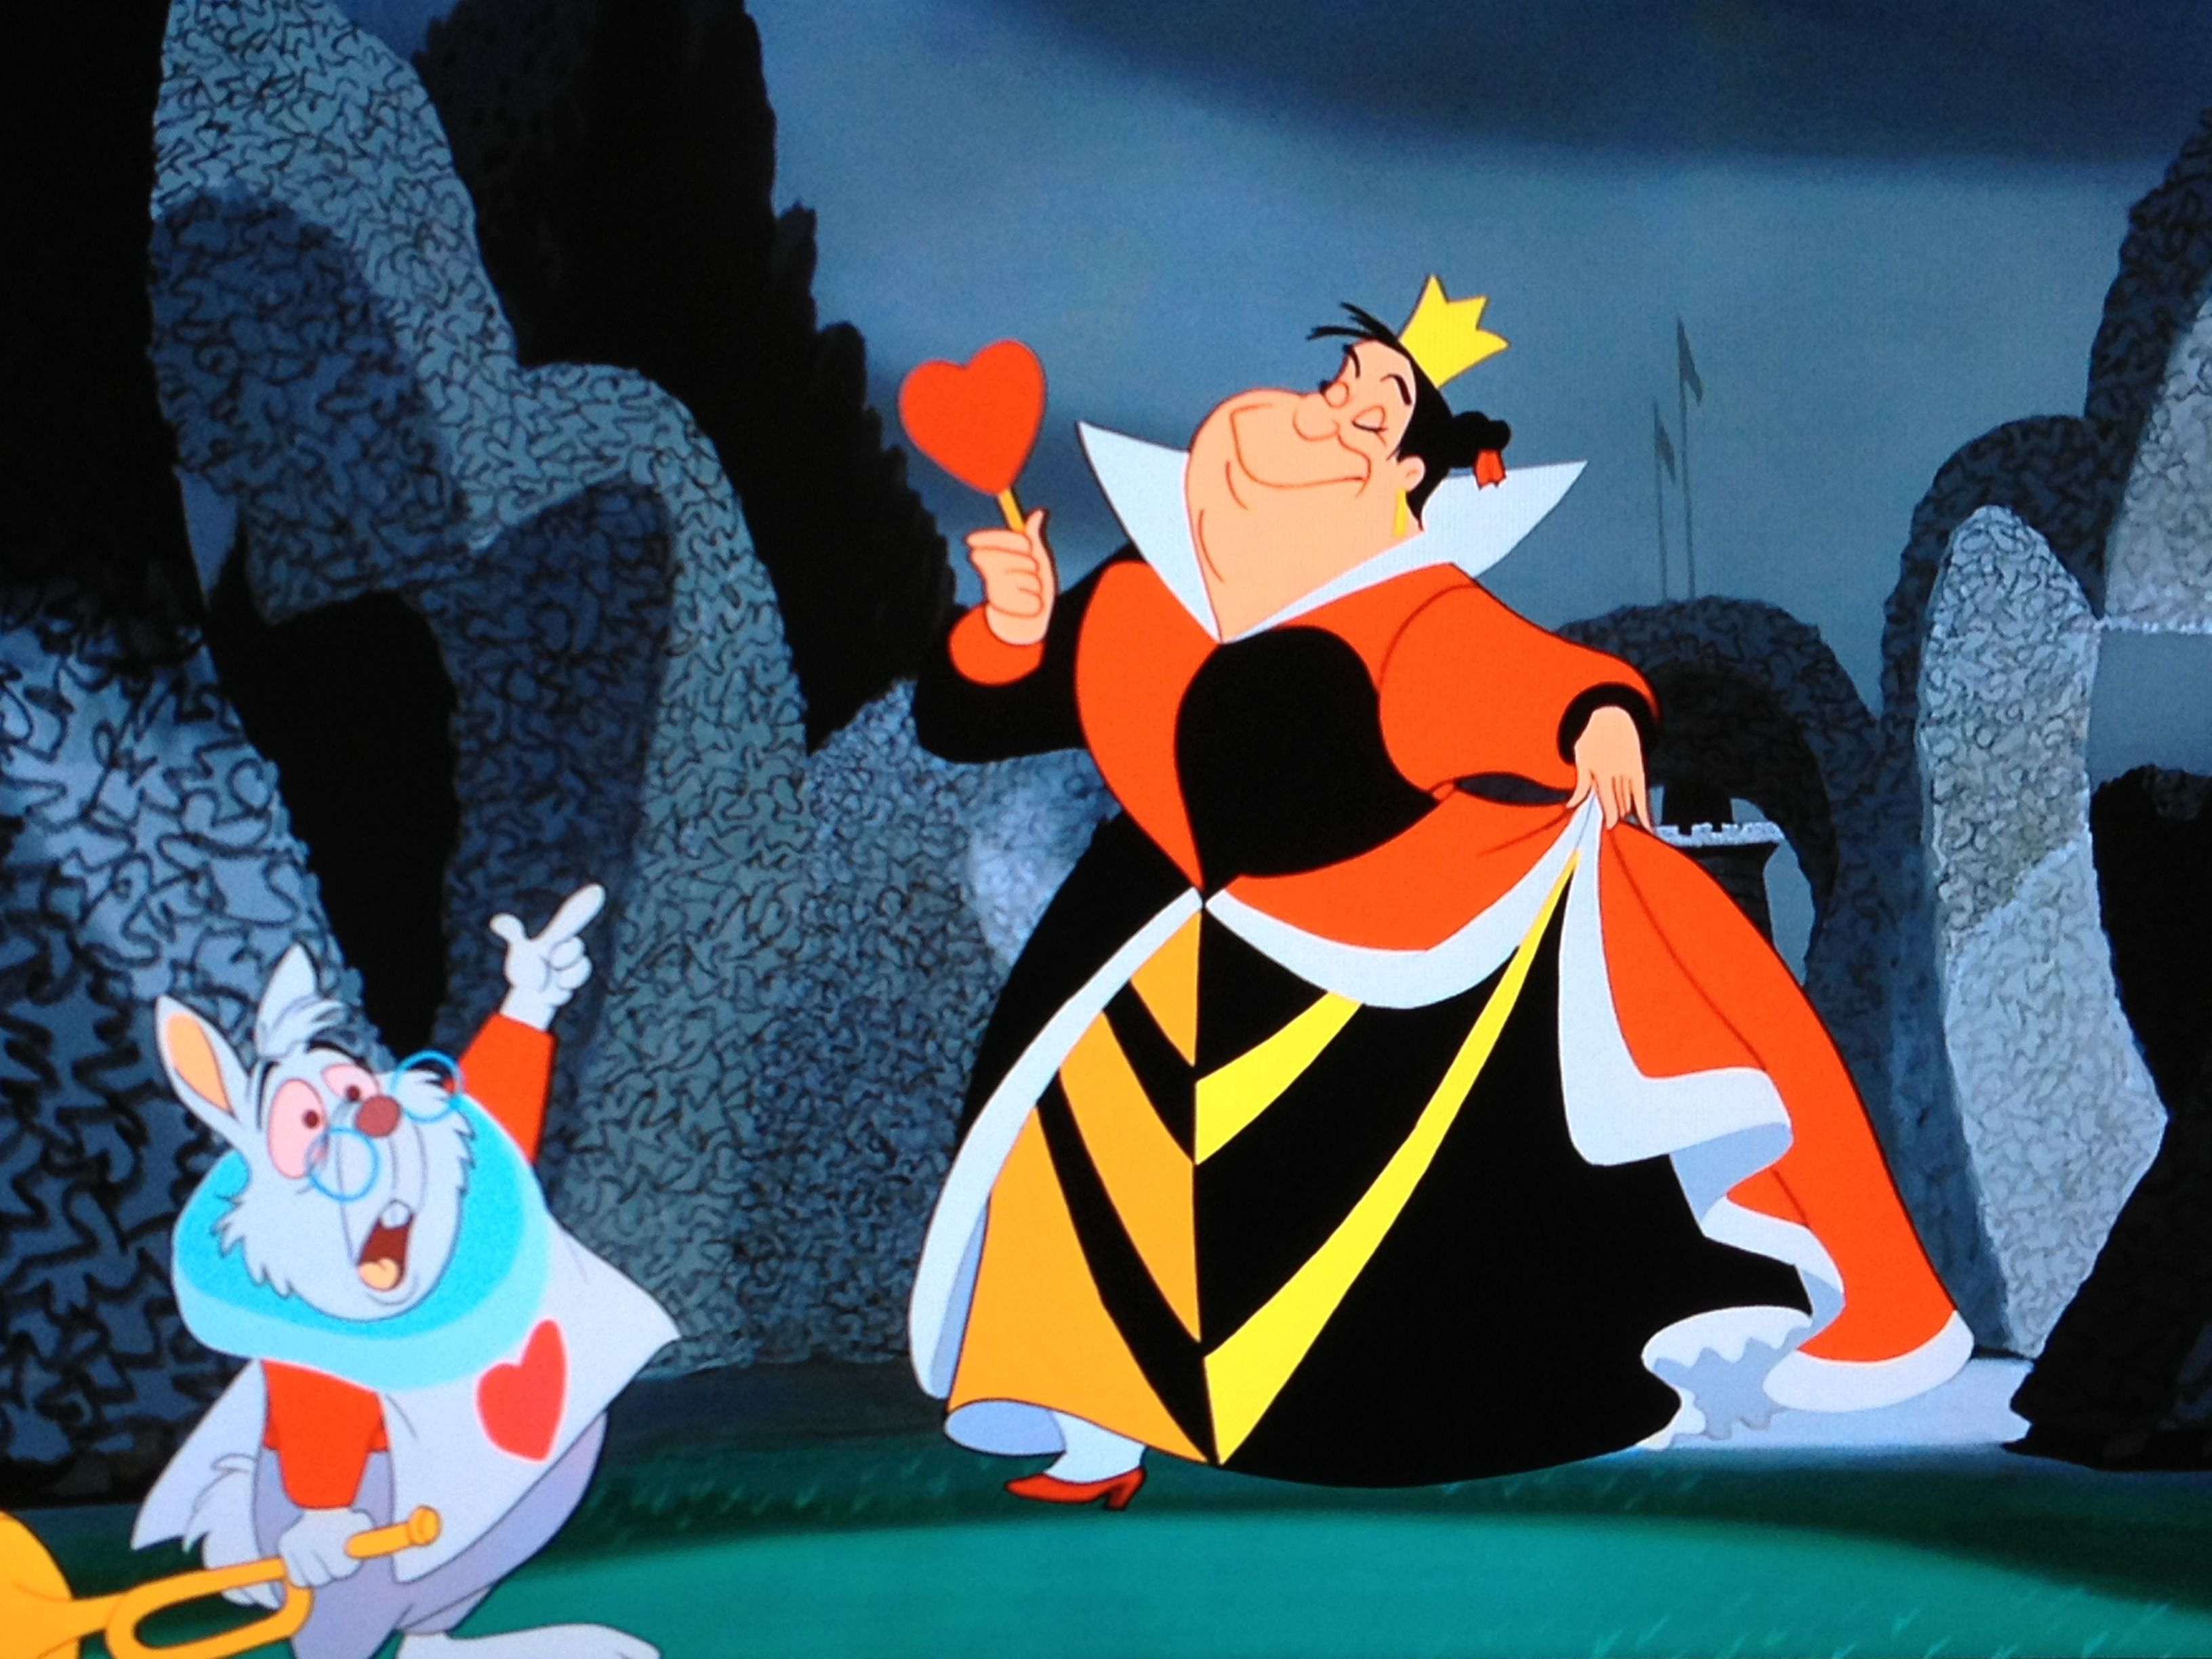 photo74.jpg (3264×2448) | Alice in Wonderland | Pinterest Queen Of Hearts Alice In Wonderland Disney